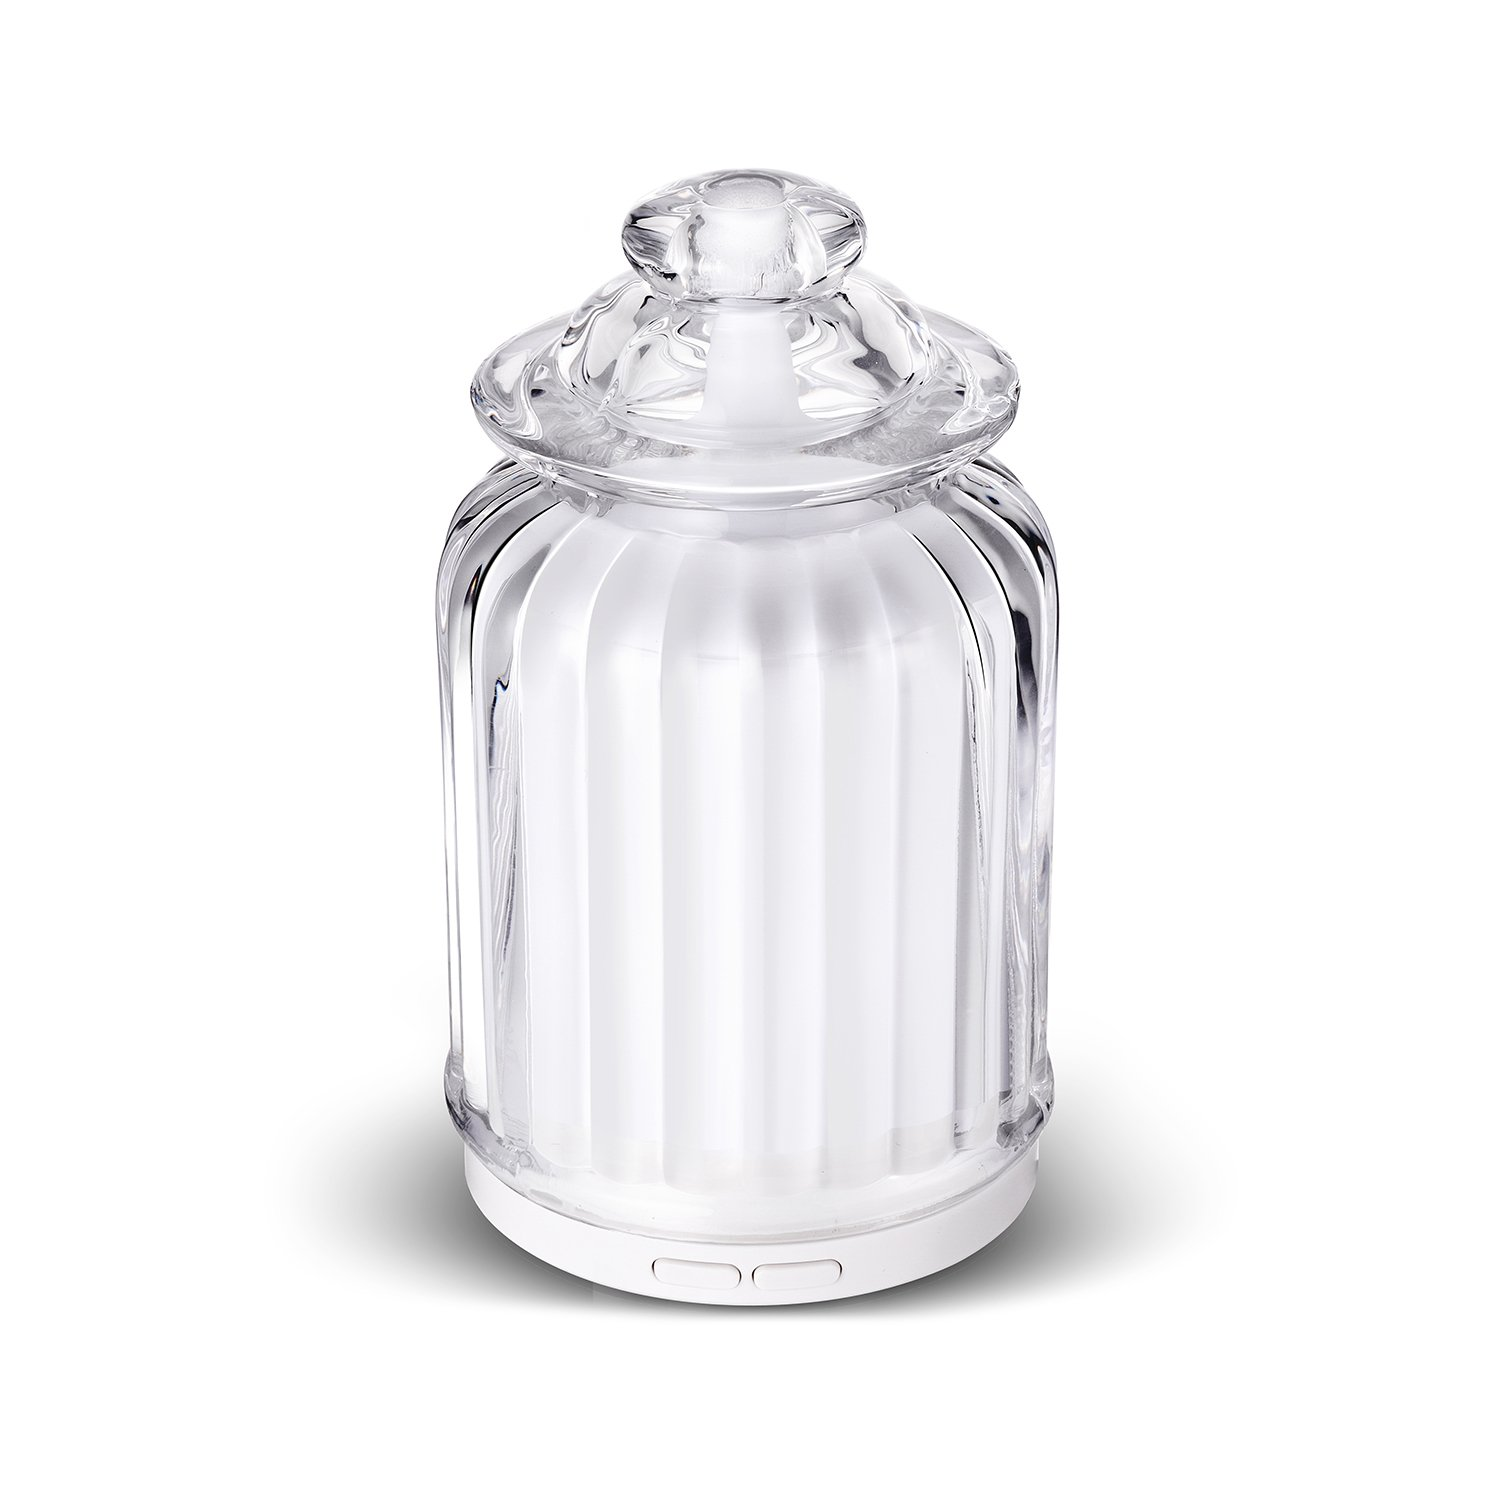 AromaAllure Glass Ultrasonic Aromatherapy Diffuser, White Glass Diffuser for Home, Office, Car, Travel